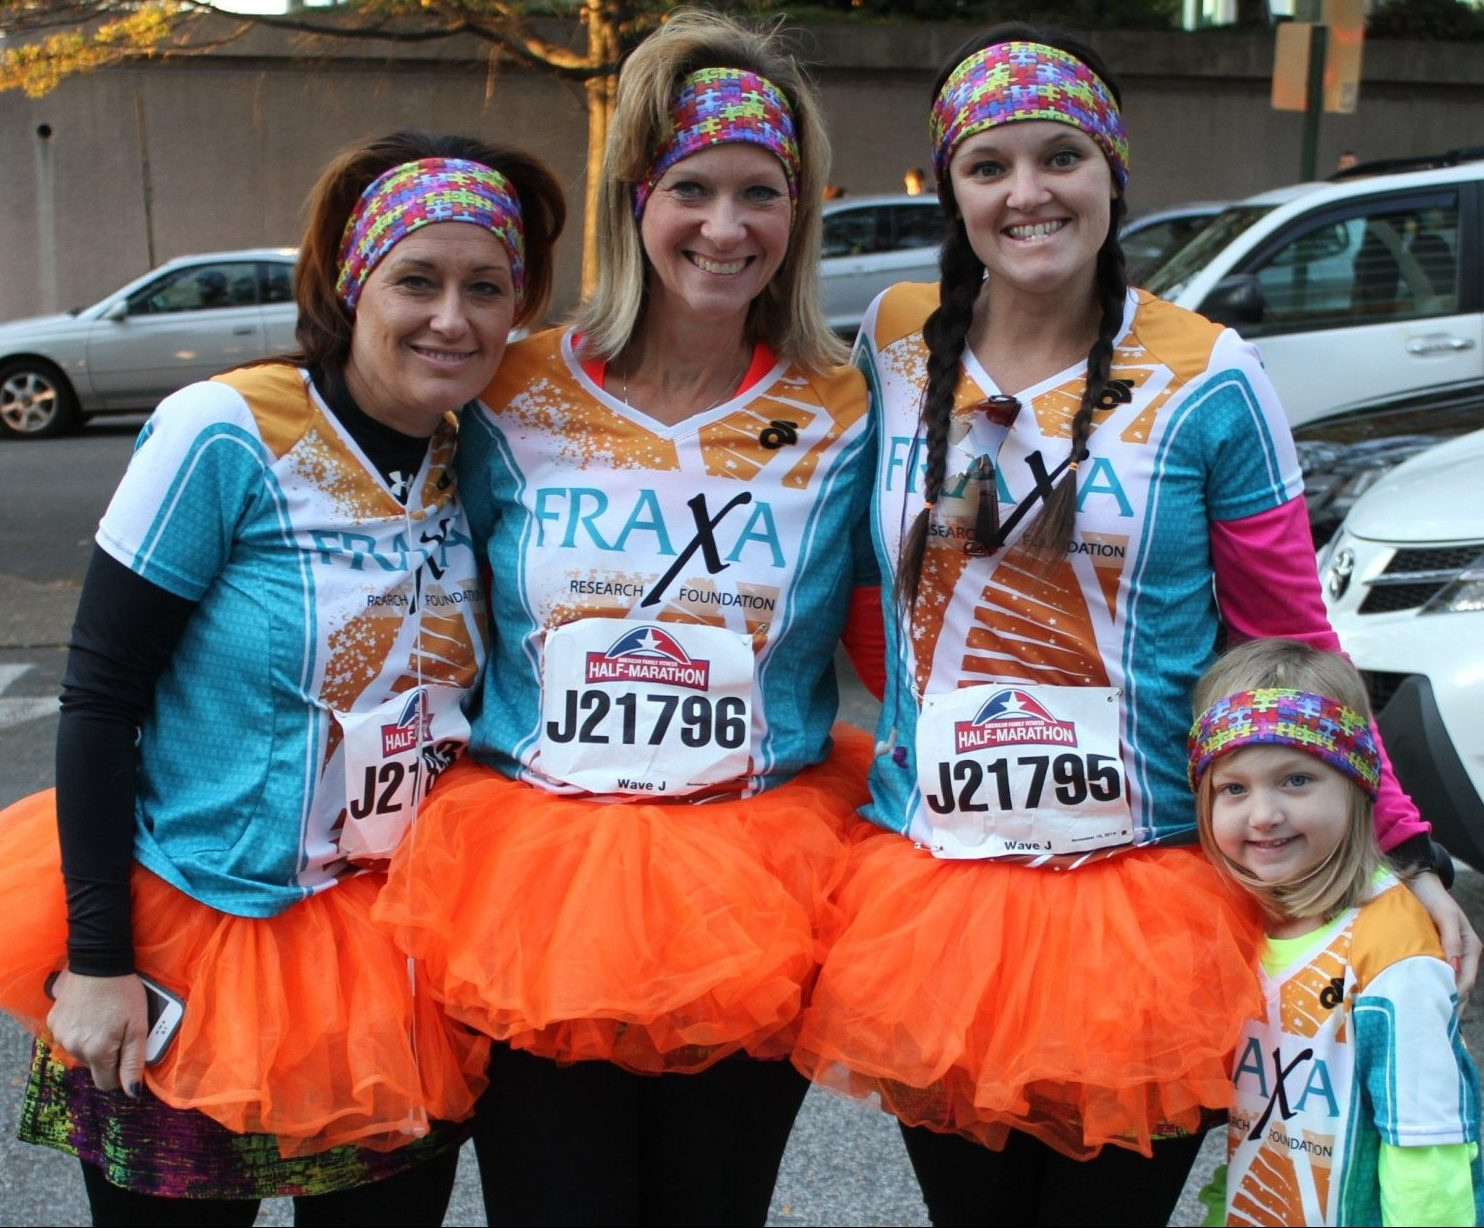 Friends of FRAXA running for Fragile X research